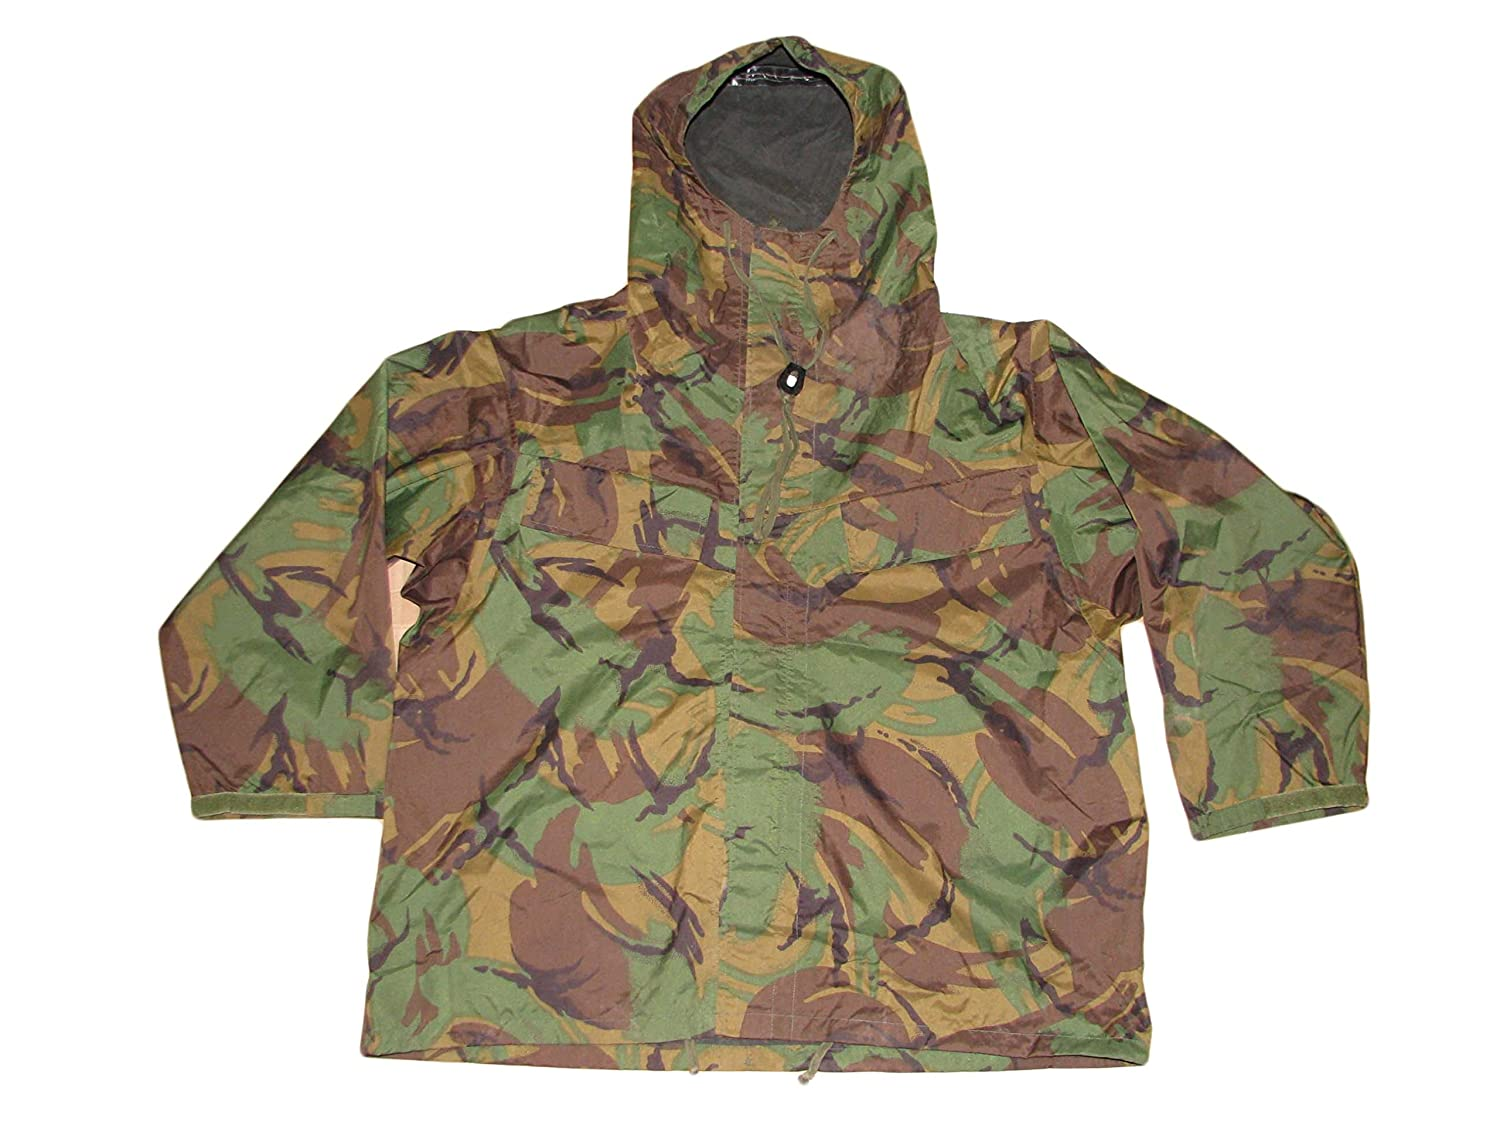 e6b25398d Genuine British Army Issued Surplus Windproof Waterproof SMOCK Rain Jacket  DPM Camo, Grade 1 (170/110): Amazon.co.uk: Clothing